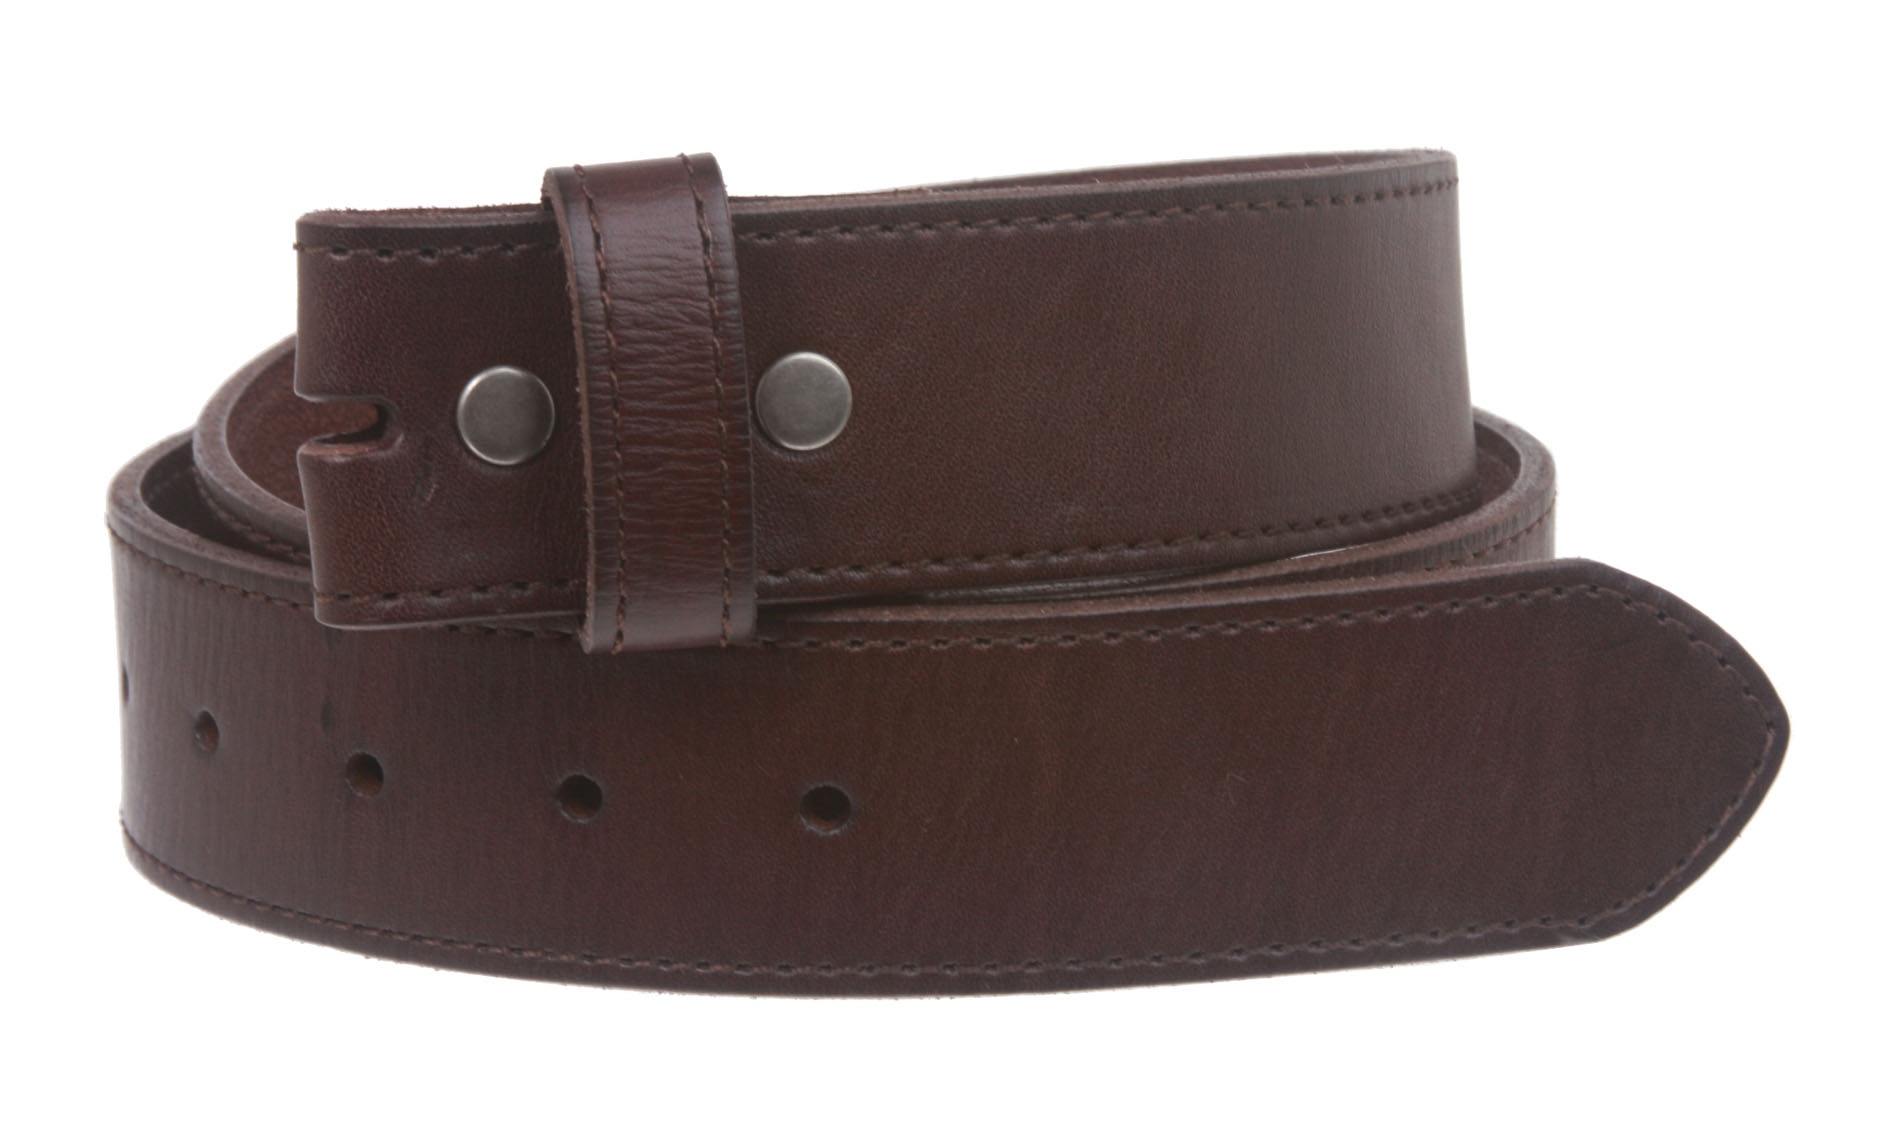 snap on cowhide grain stitching edged leather belt